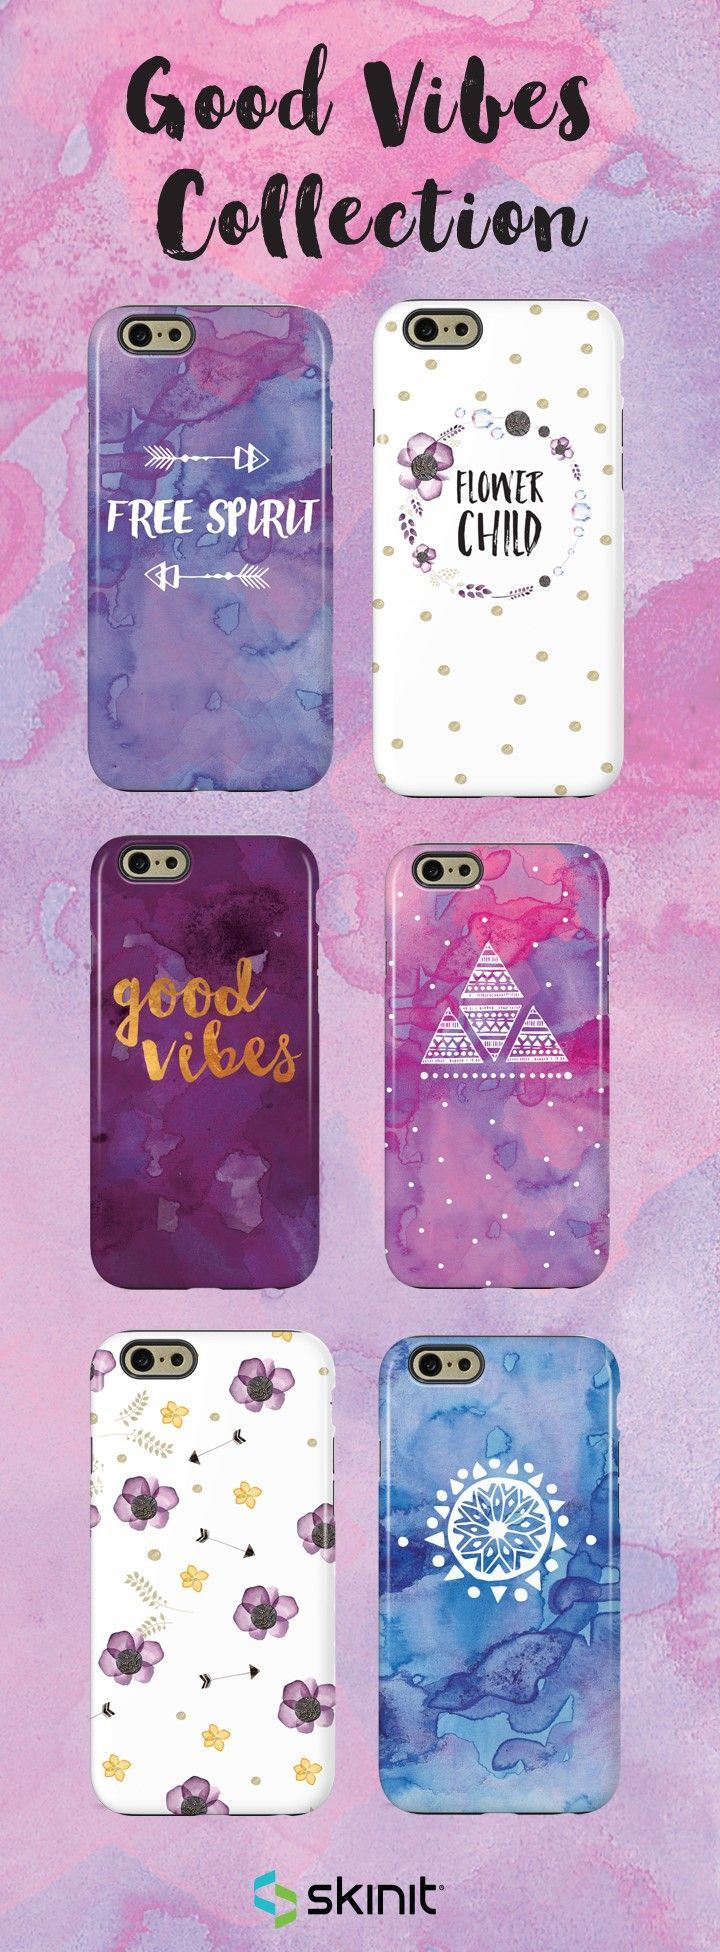 Good vibes only. Channel your inner bohemian spirit with our Good Vibes Collection. All designs are available as a case or skin for multiple devices. Select your device and shop the entire collection at www.skinit.com #SkinitMade Cell Phone, Cases & Covers... http://www.ebay.com/sch/i.html?_from=R40&_trksid=p4712.m570.l1313.TR10.TRC0.A0.H1.Xcell+phone+cases+and+covers.TRS0&_nkw=cell+phone+cases+and+covers&_sacat=0